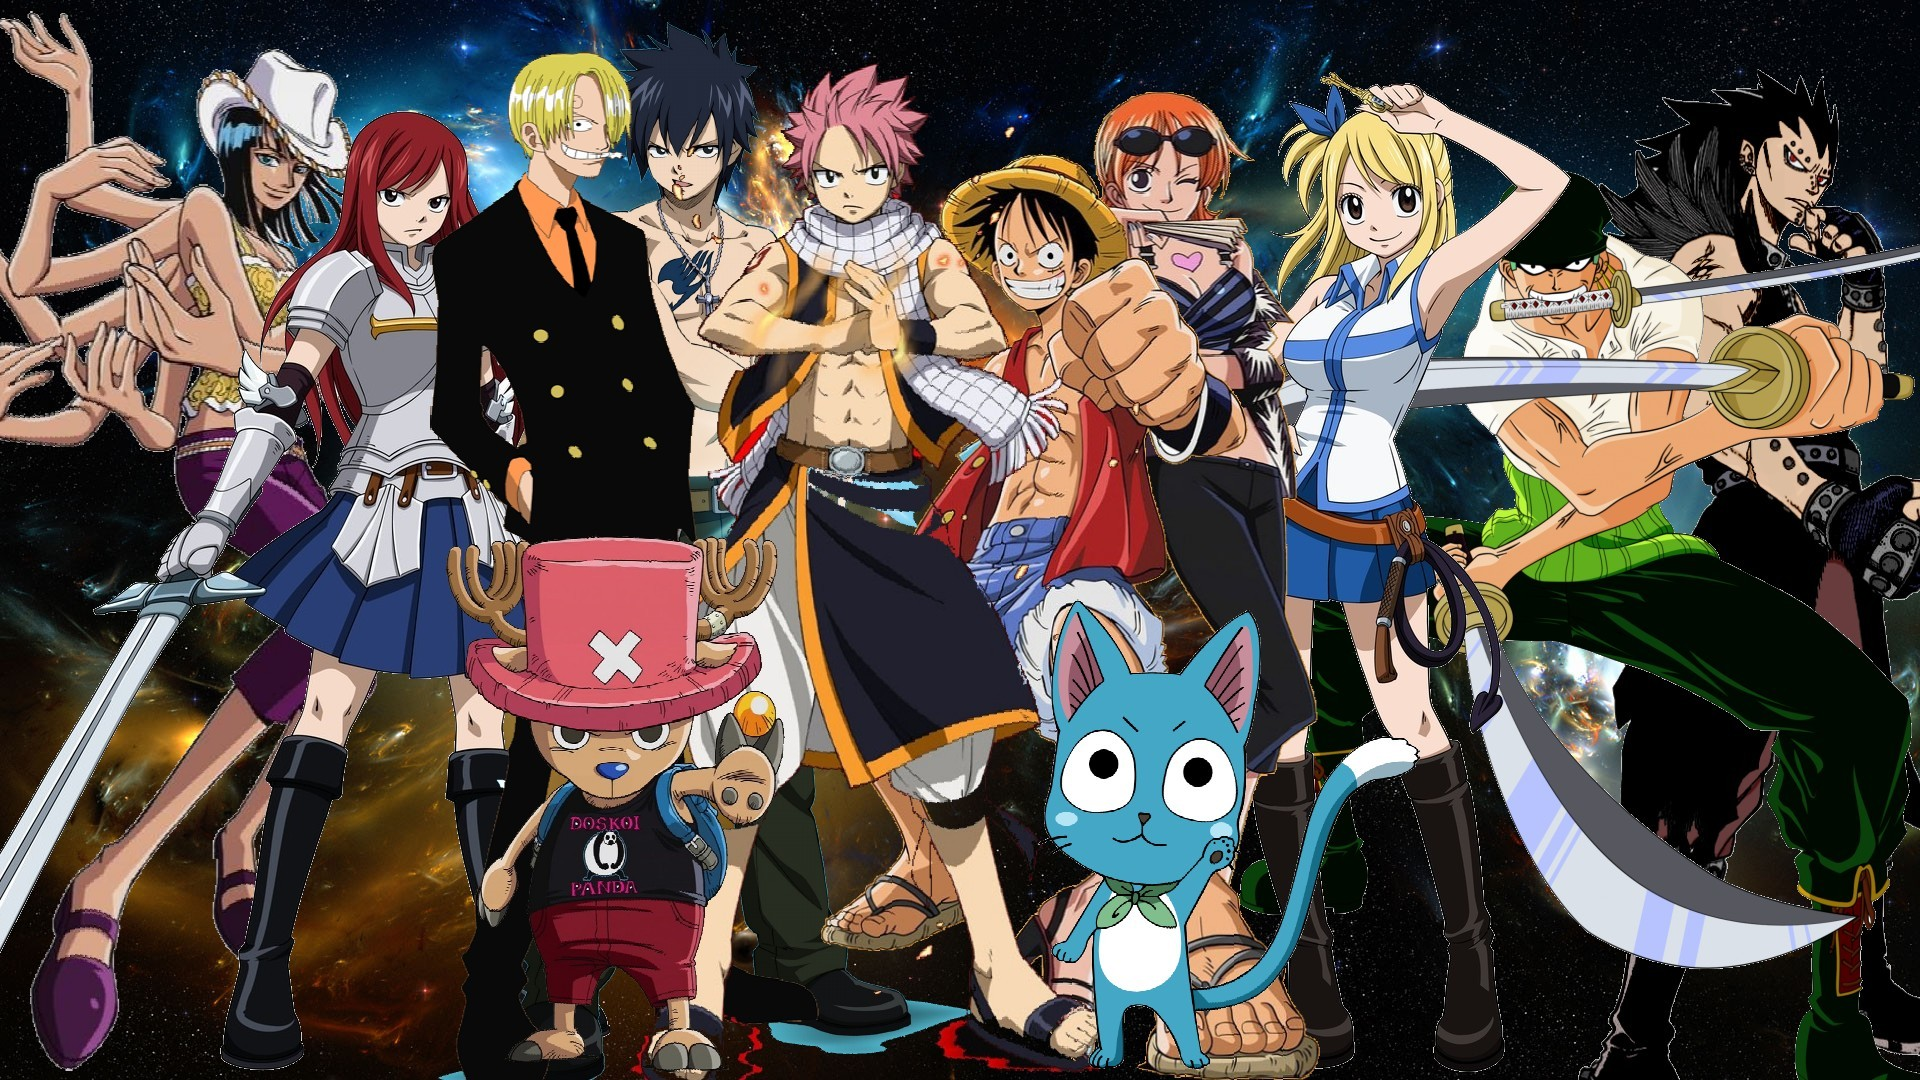 Download Fairy Tail Wallpaper Windows Manga pictures in high 1920x1080